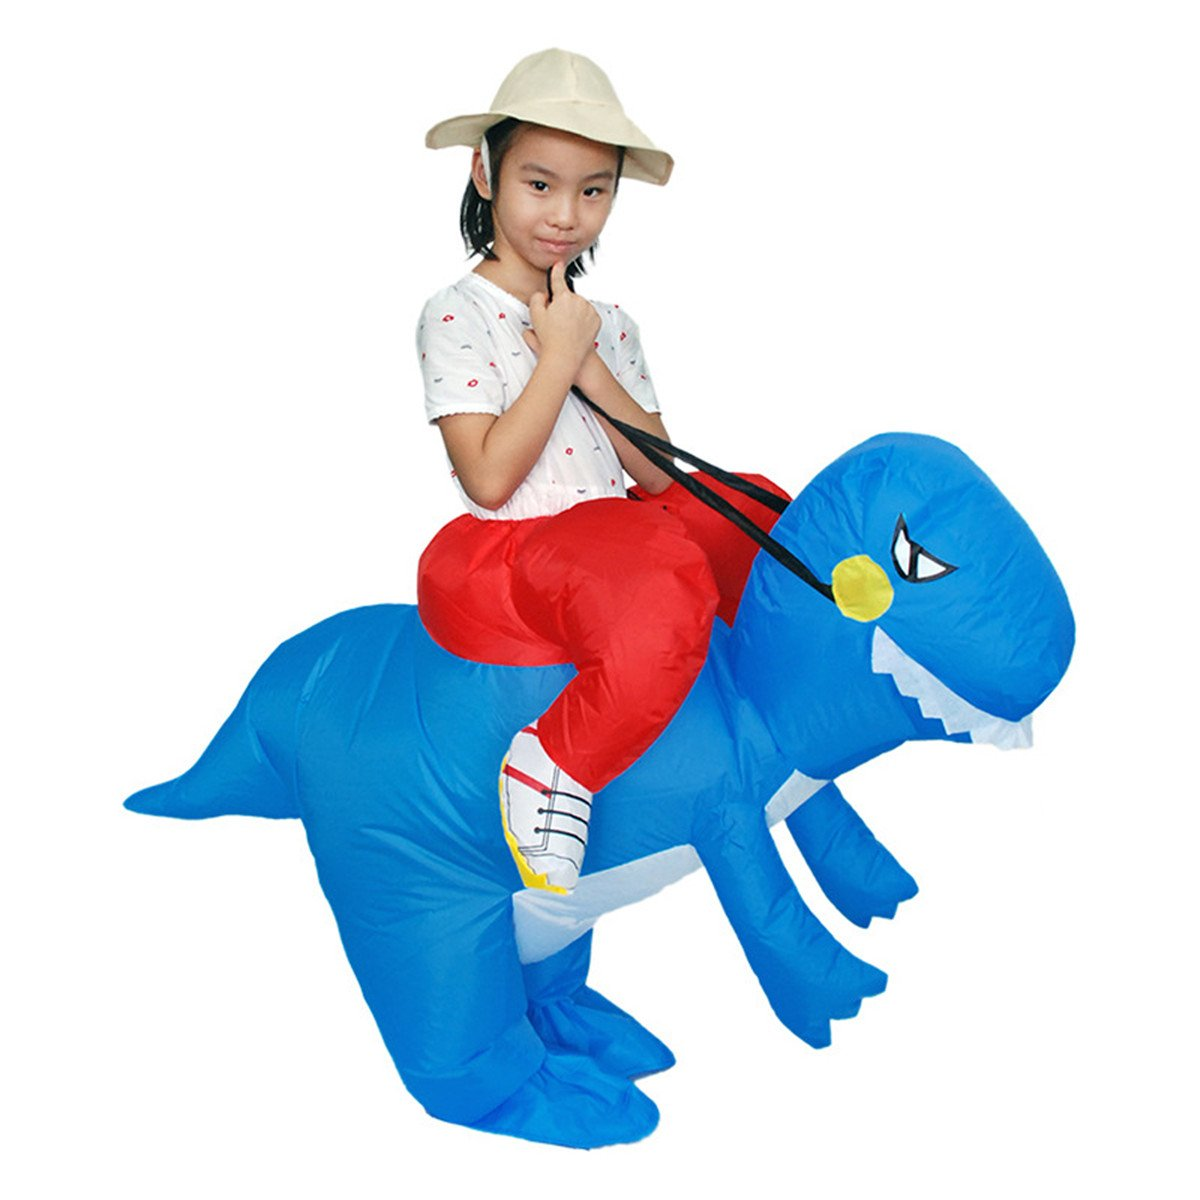 Tricandide Kids Halloween Costume Inflatable Suit Blow Up Outfit TRCQF-ZLJ-KKZ-BLUEDINOSAURS